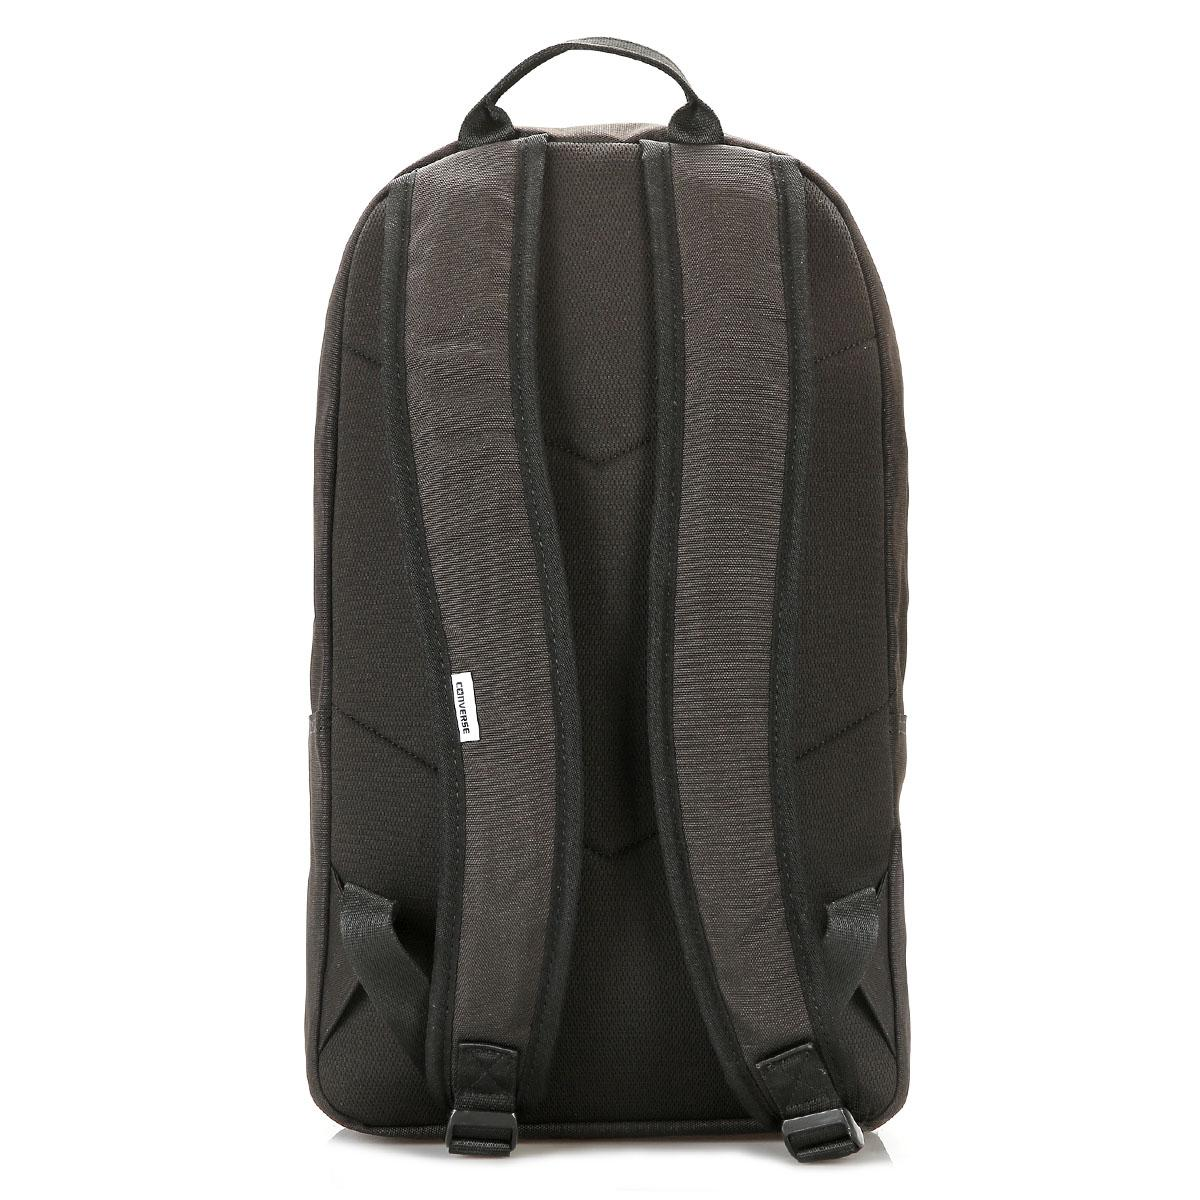 Converse - Black Core Edc Poly Backpack for Men - Lyst. View fullscreen 073a52dfd0c91